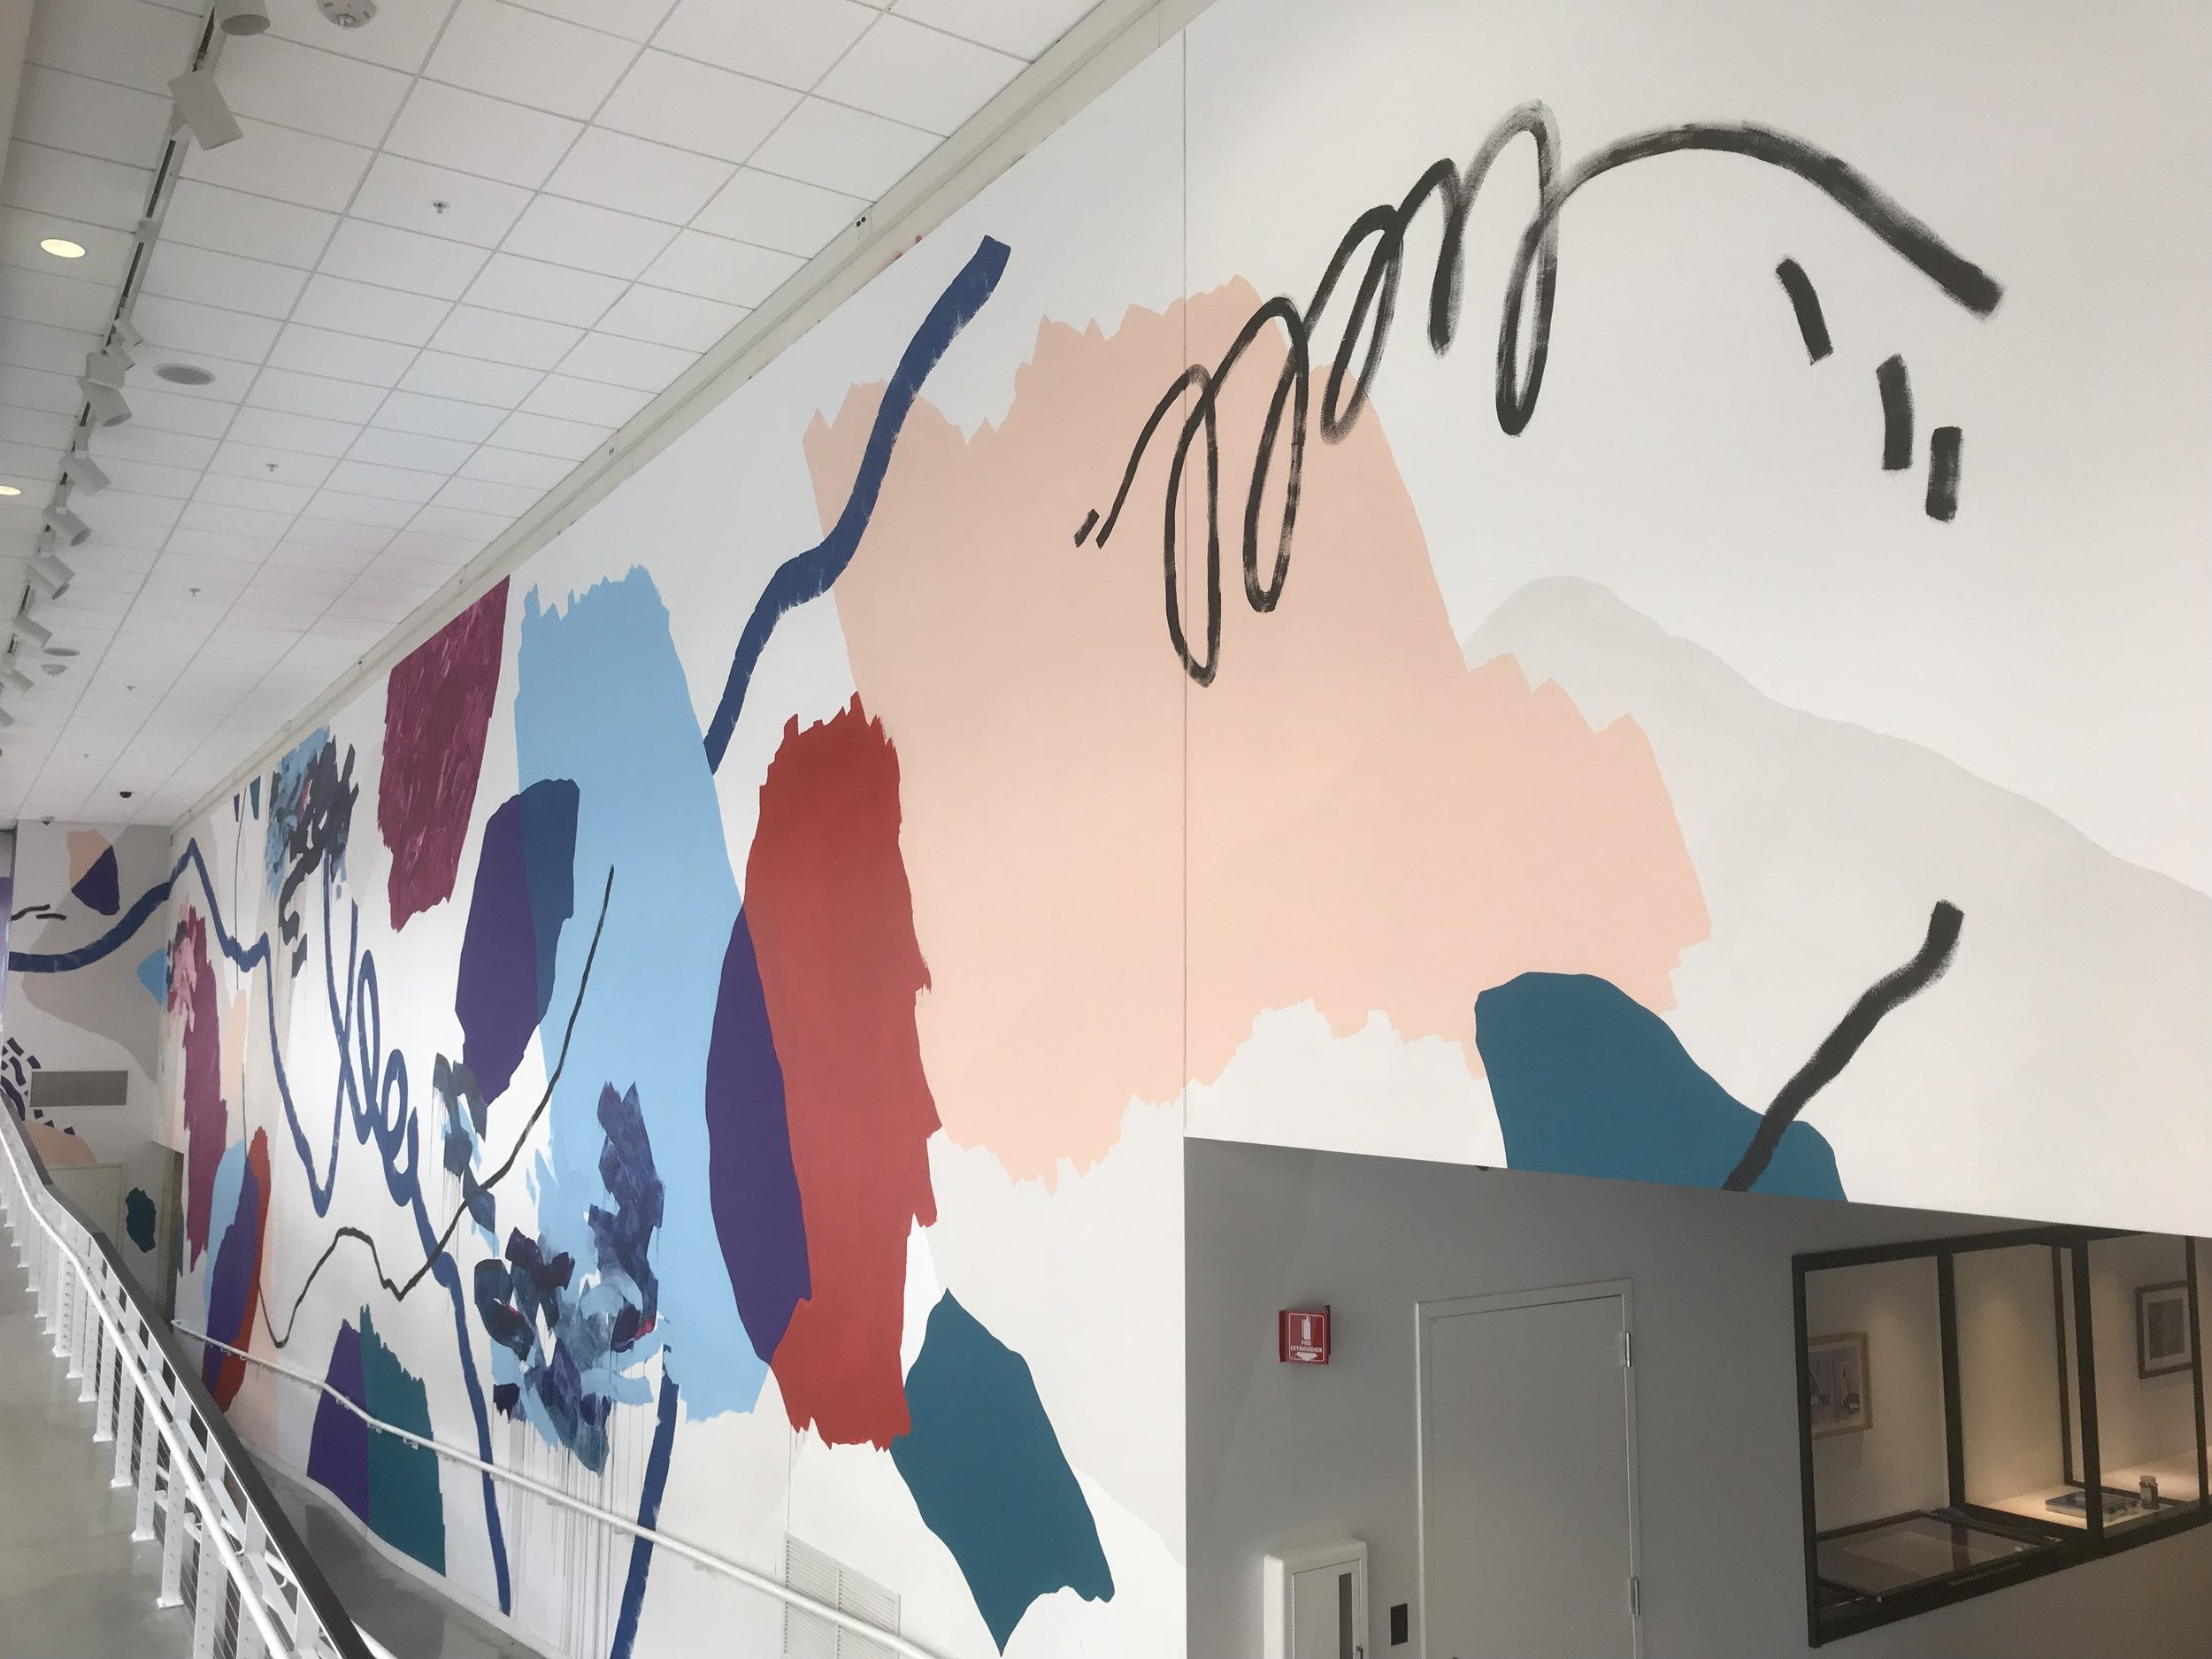 UICA's Pantone Color of the Year mural by Heather Day